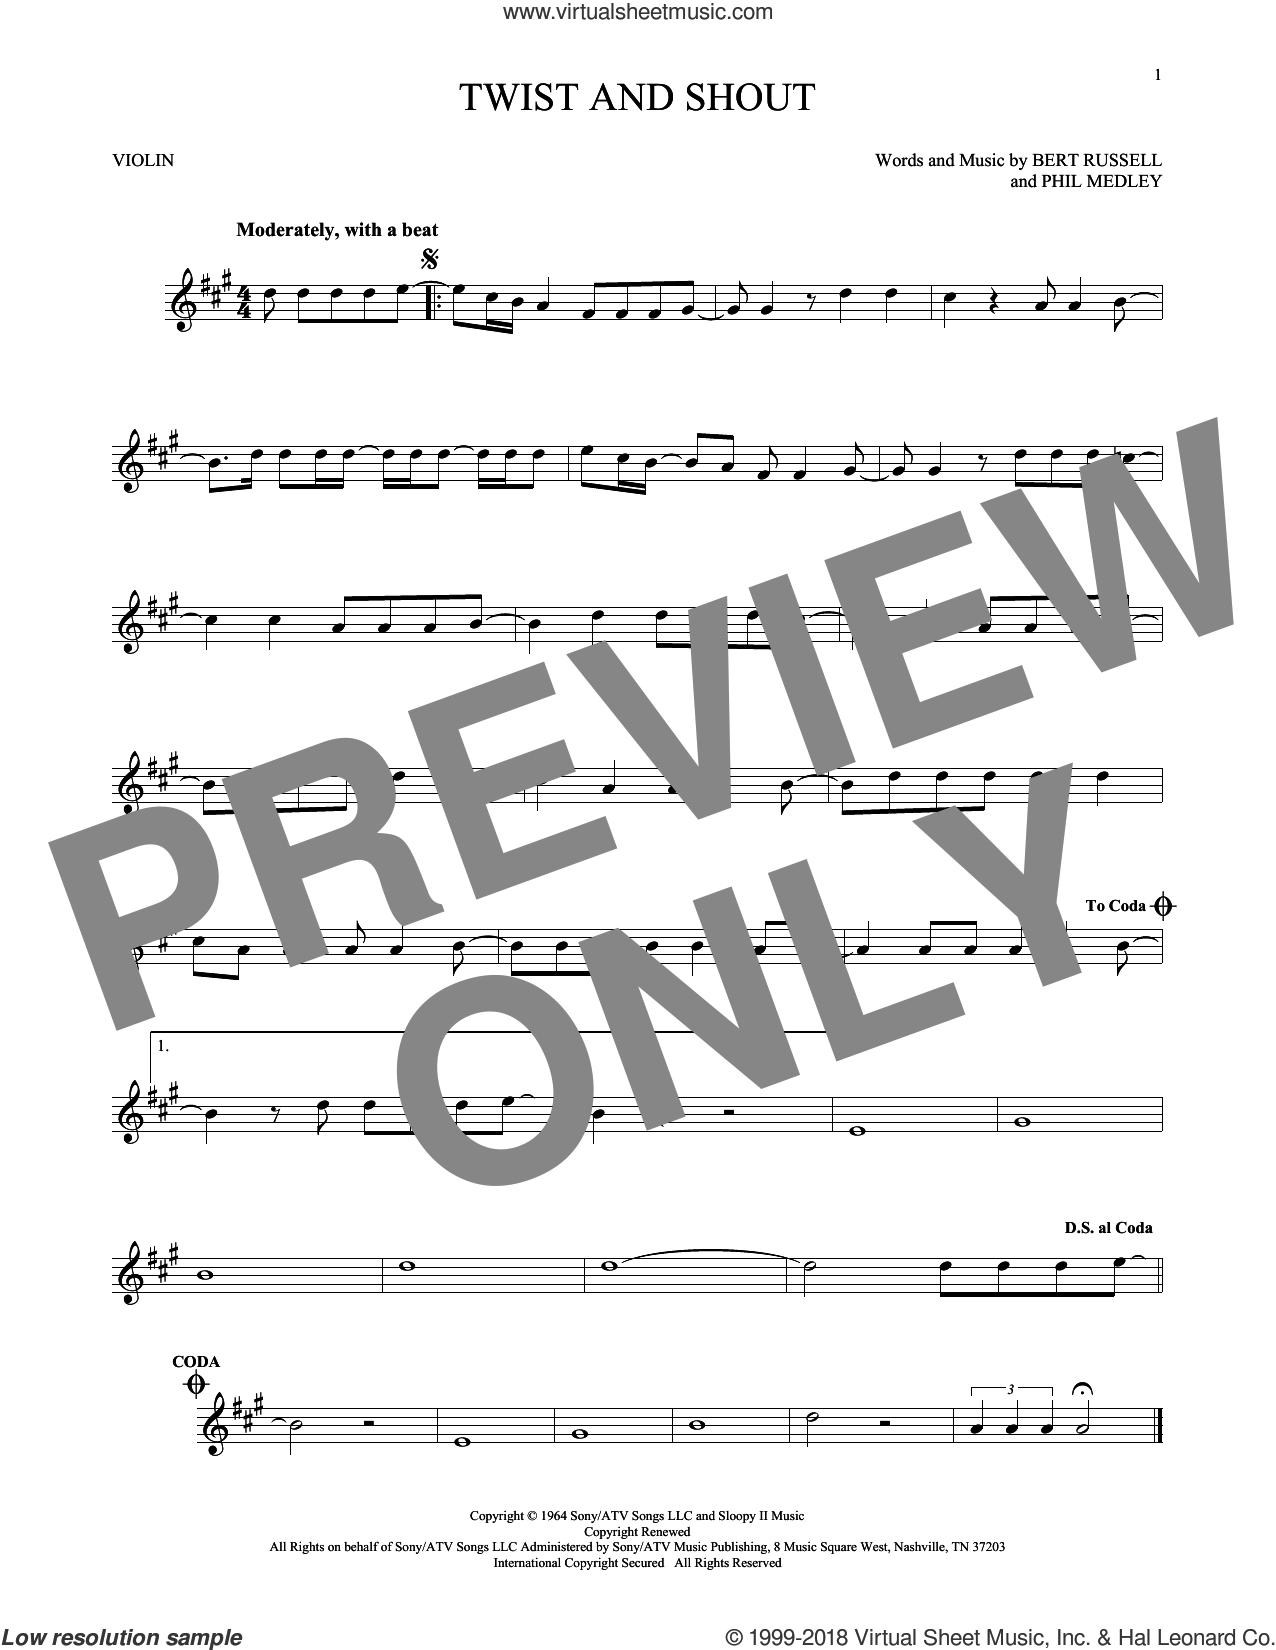 Twist And Shout sheet music for violin solo by Phil Medley, The Beatles, The Isley Brothers and Bert Russell. Score Image Preview.